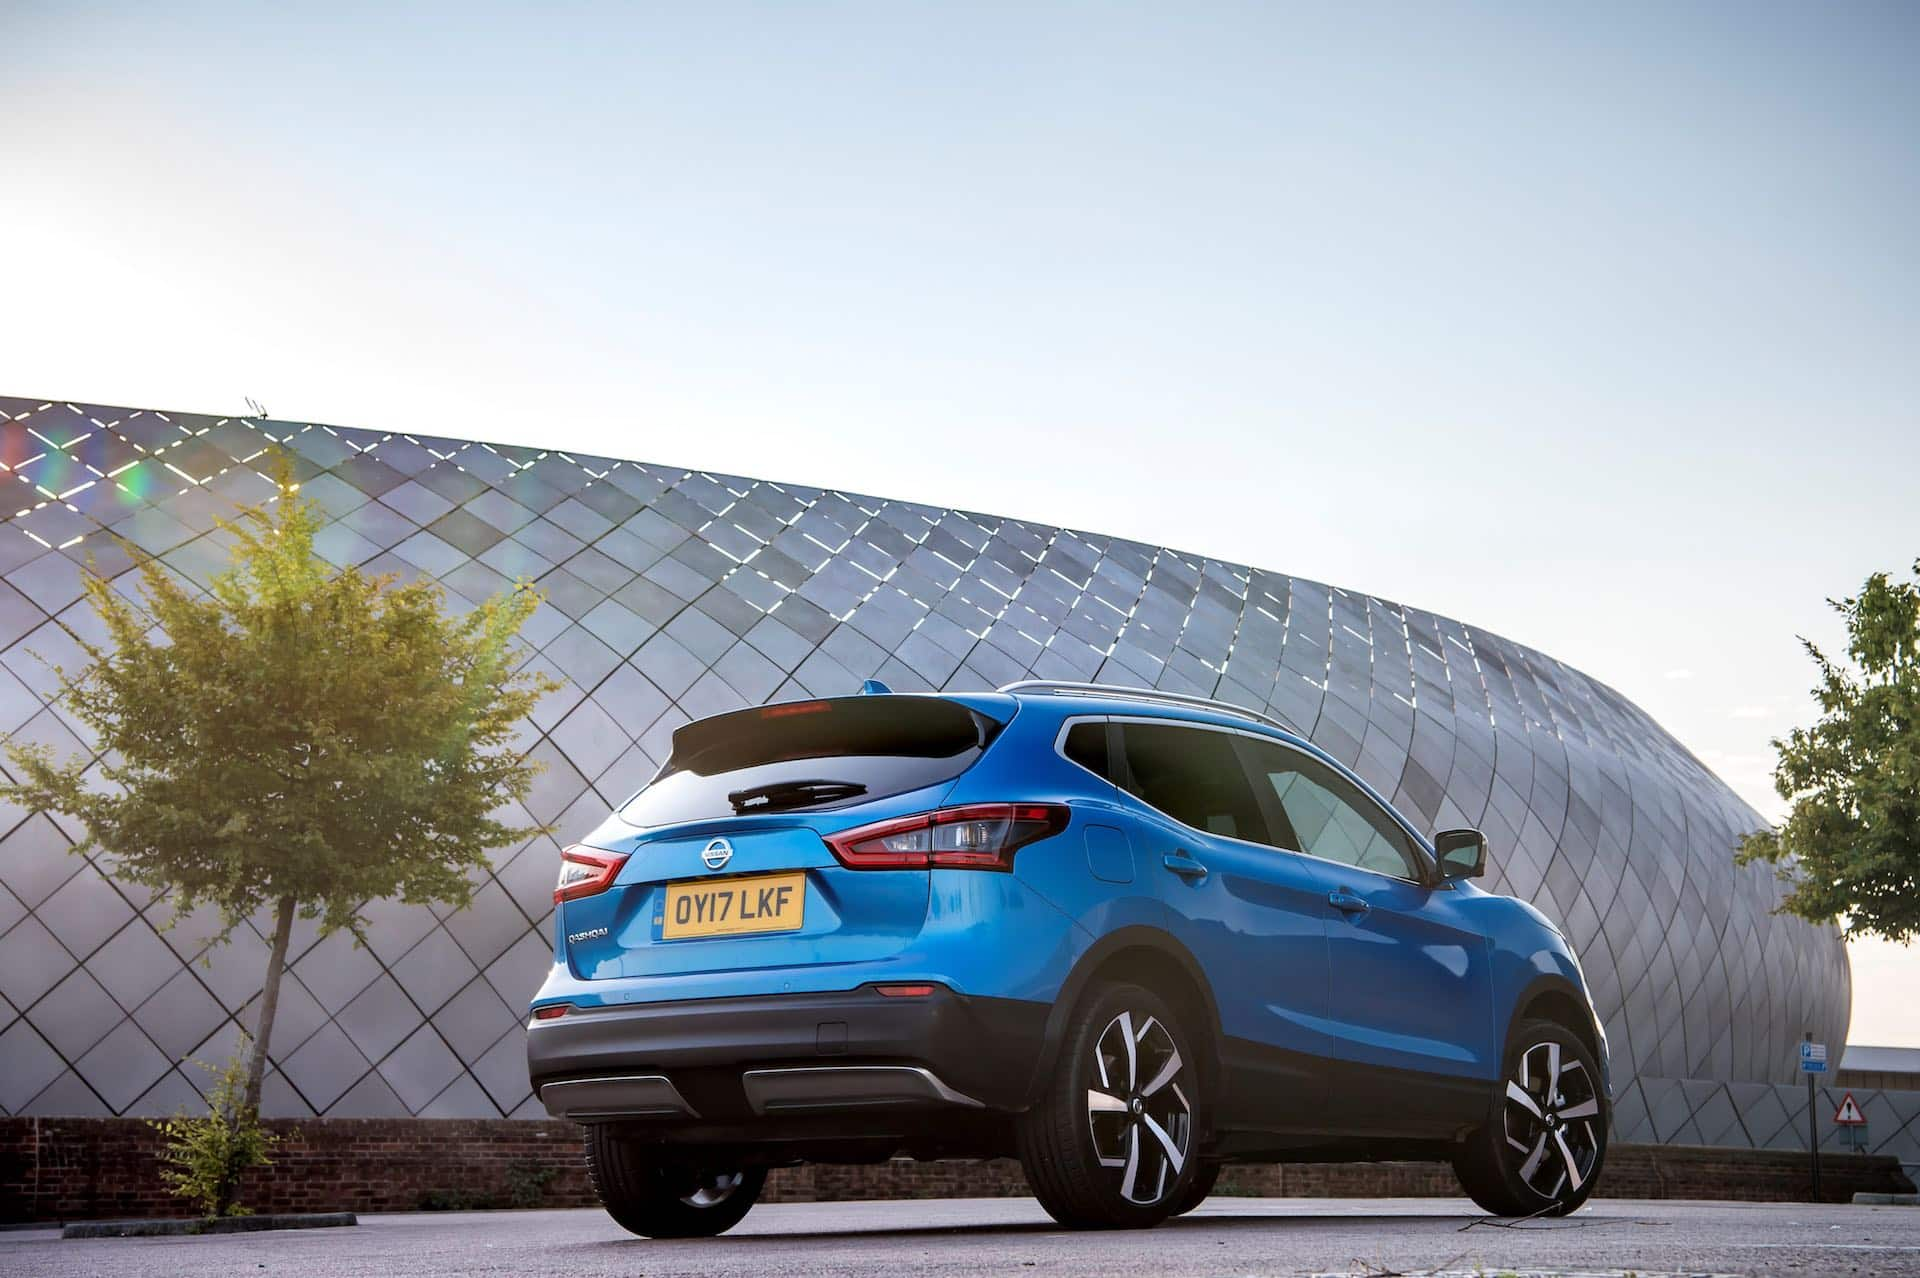 Nissan Qashqai update review 2017 (The Car Expert)